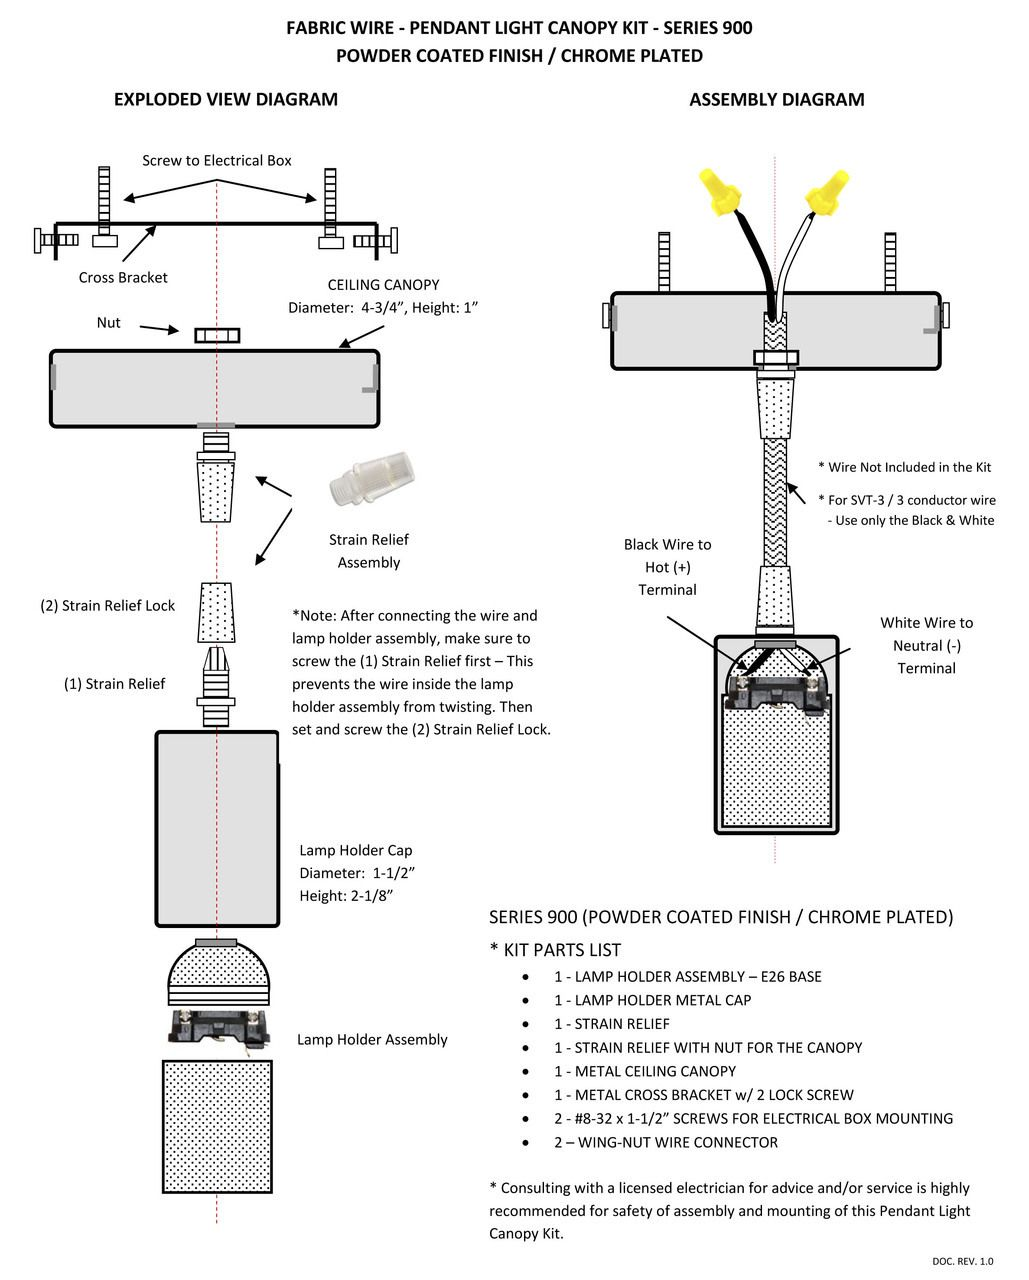 wiring diagram for canopy lights wiring library light relay wiring diagram gray pendant light canopy kit with 6 ft cloth by fabricwire